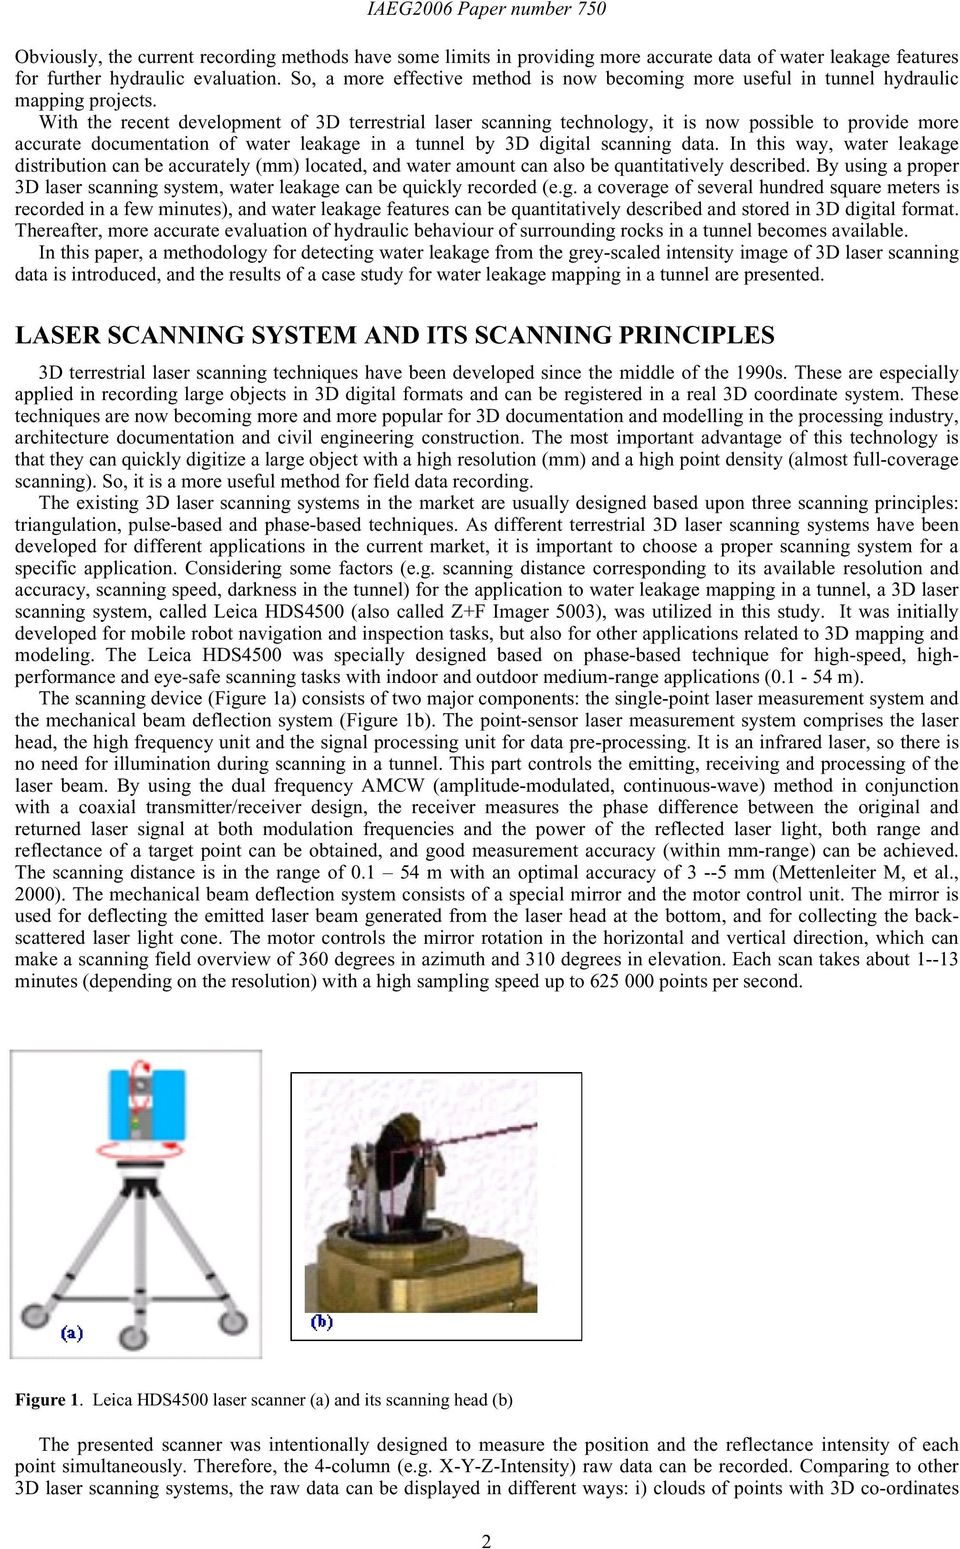 Detection of water leakage using laser images from 3D laser